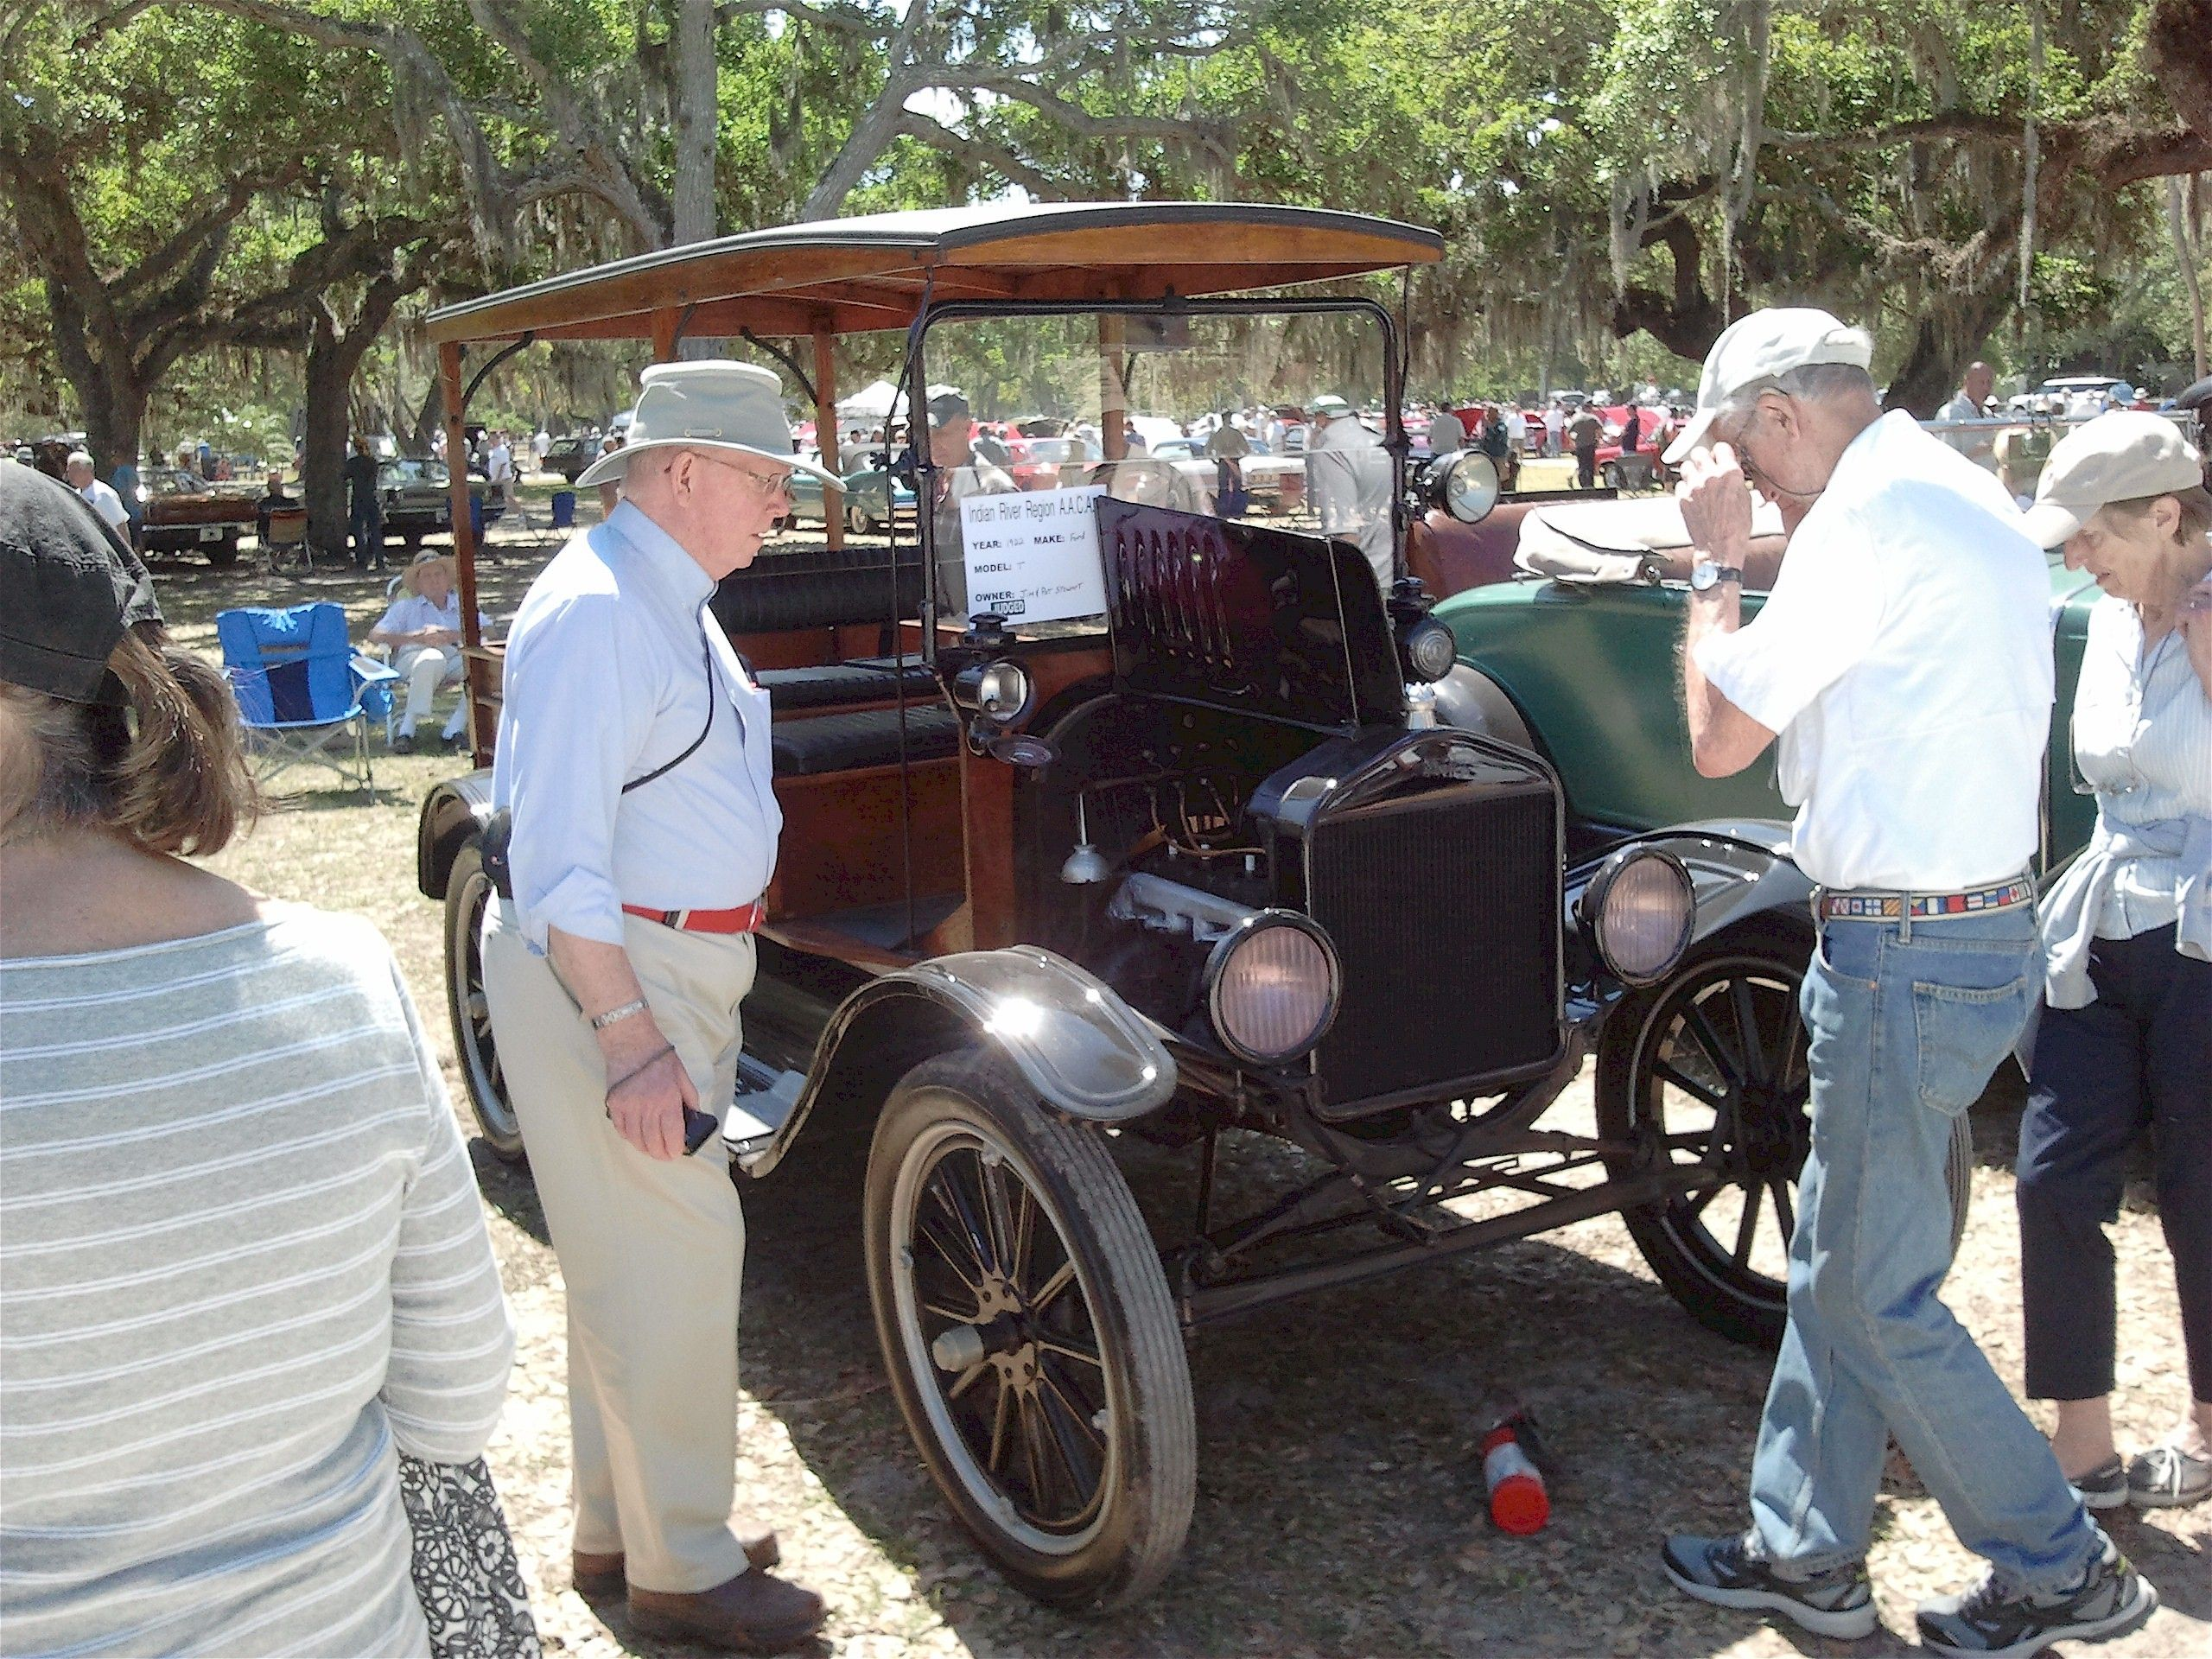 Ford Model T Wagon Vero Beach Car Show Pinterest - Vero beach car show